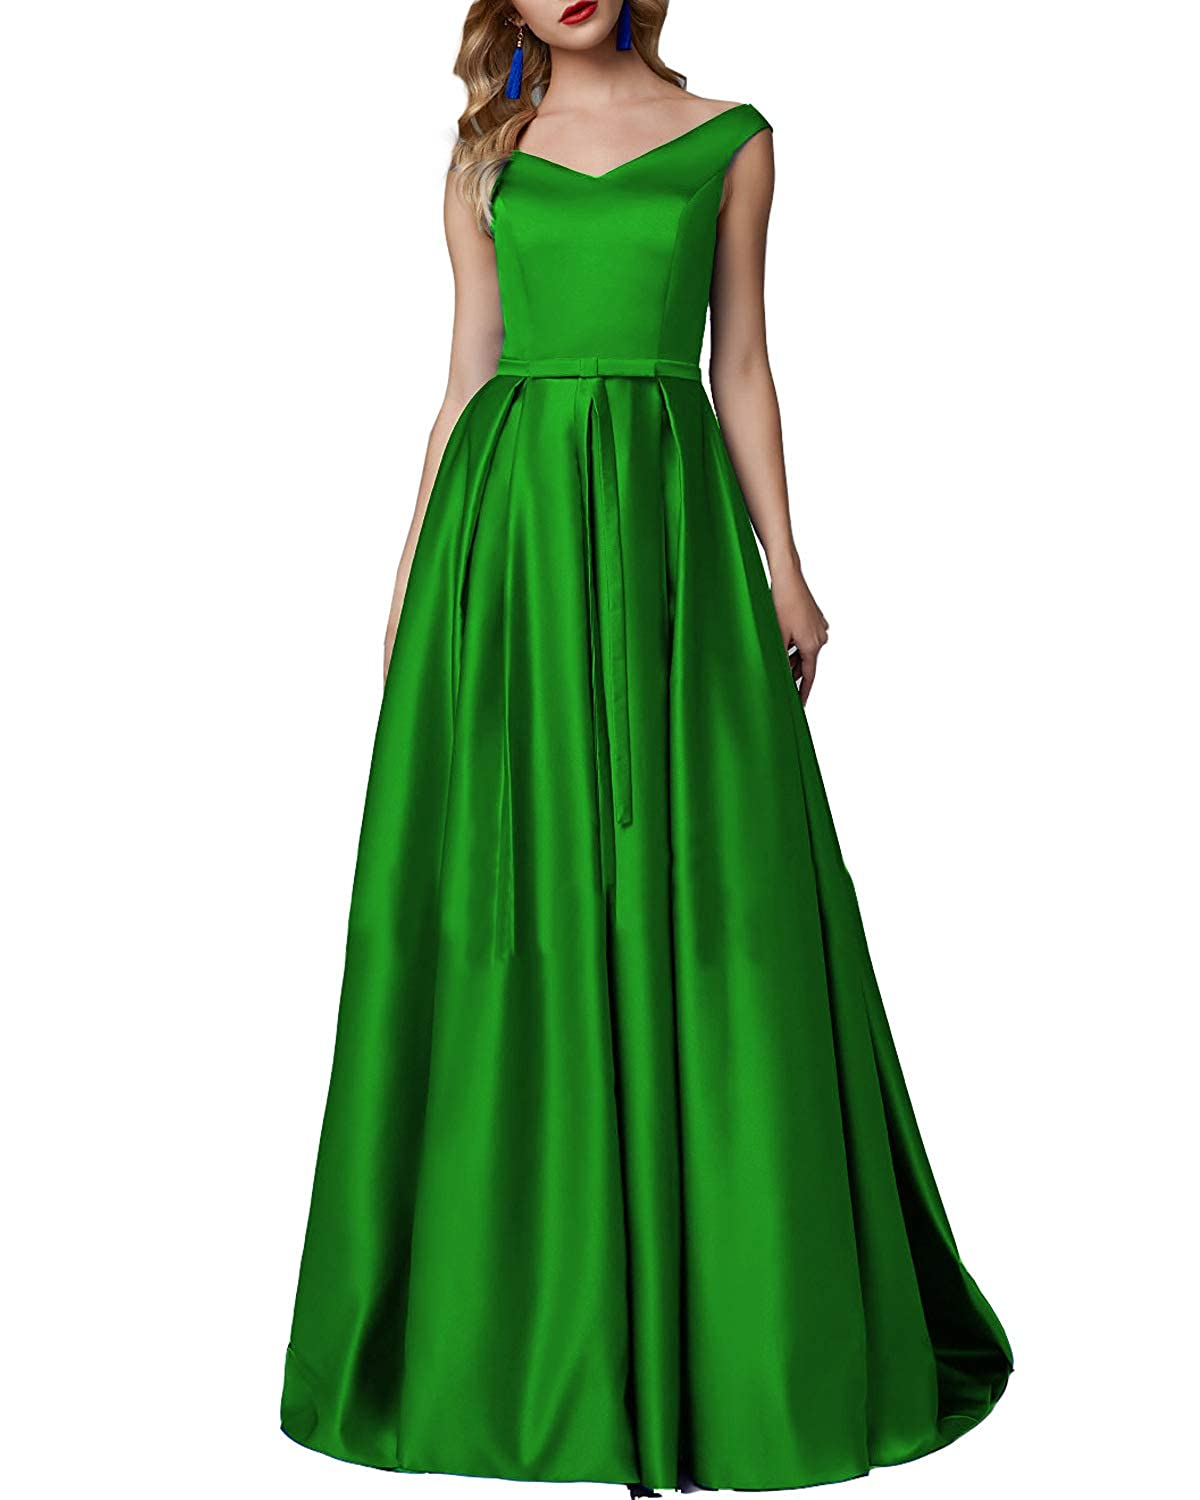 Green CCBubble Long Satin Prom Dresses Aline V Neck Sleeveless Formal Evening Wedding Party Gowns